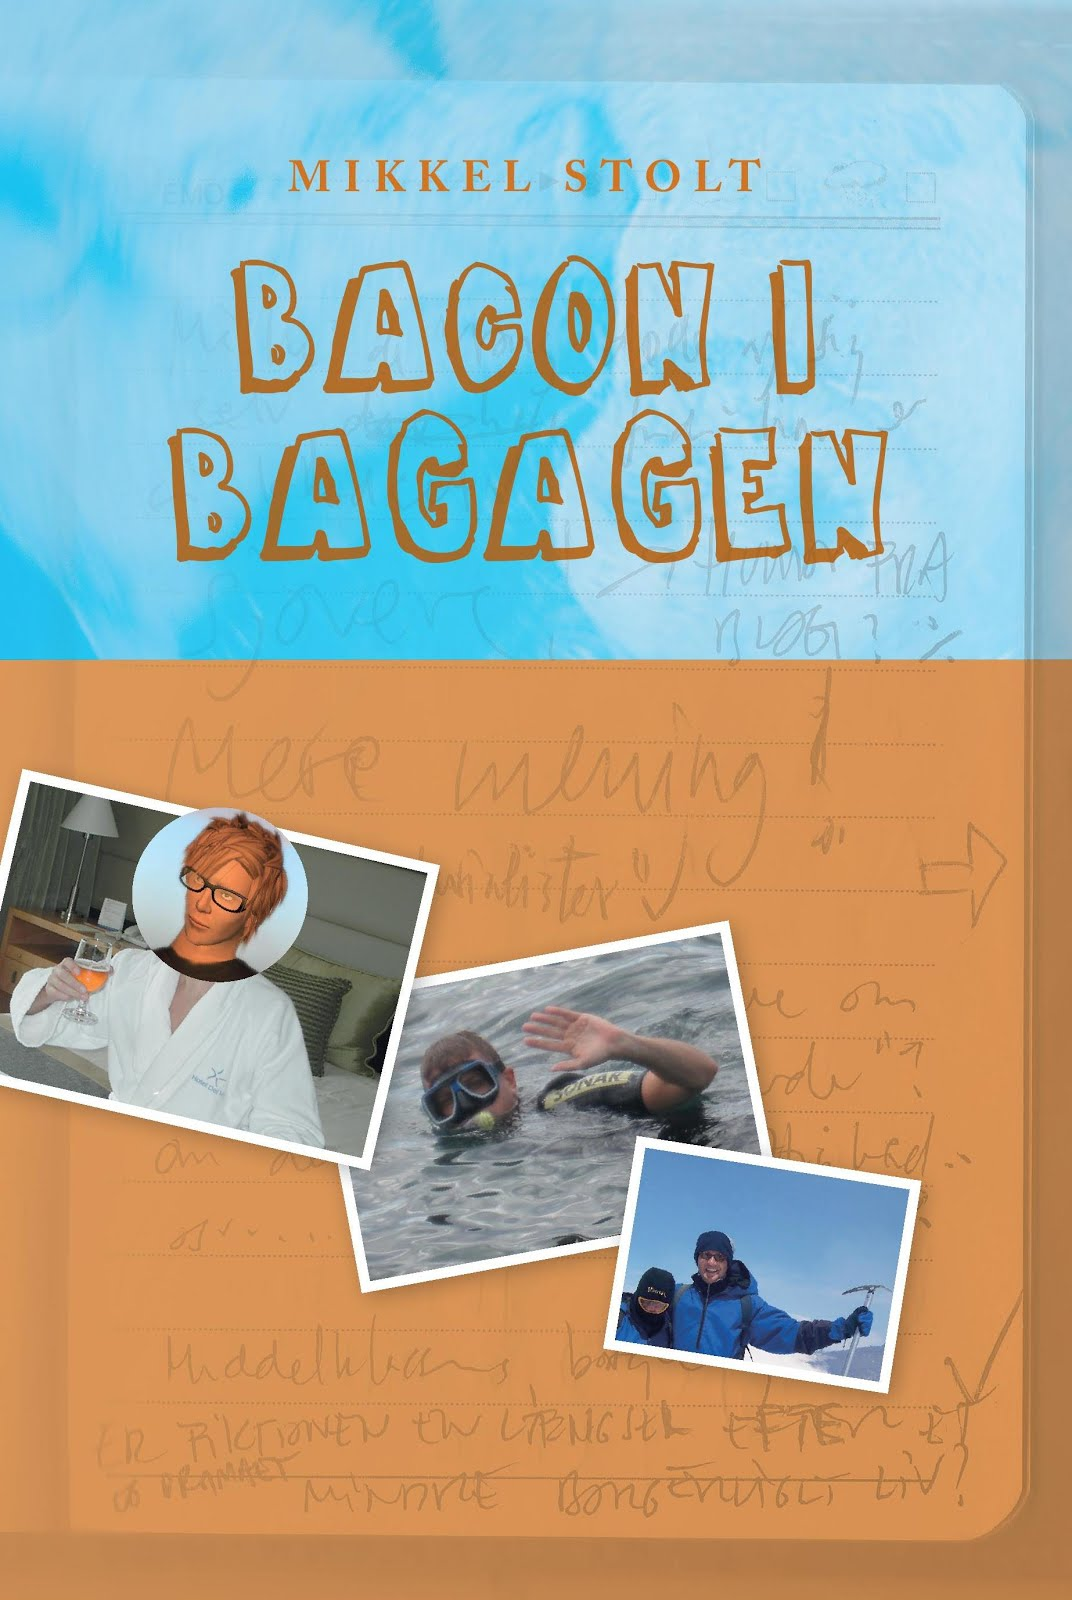 BACON I BAGAGEN - a novel by Mikkel Stolt